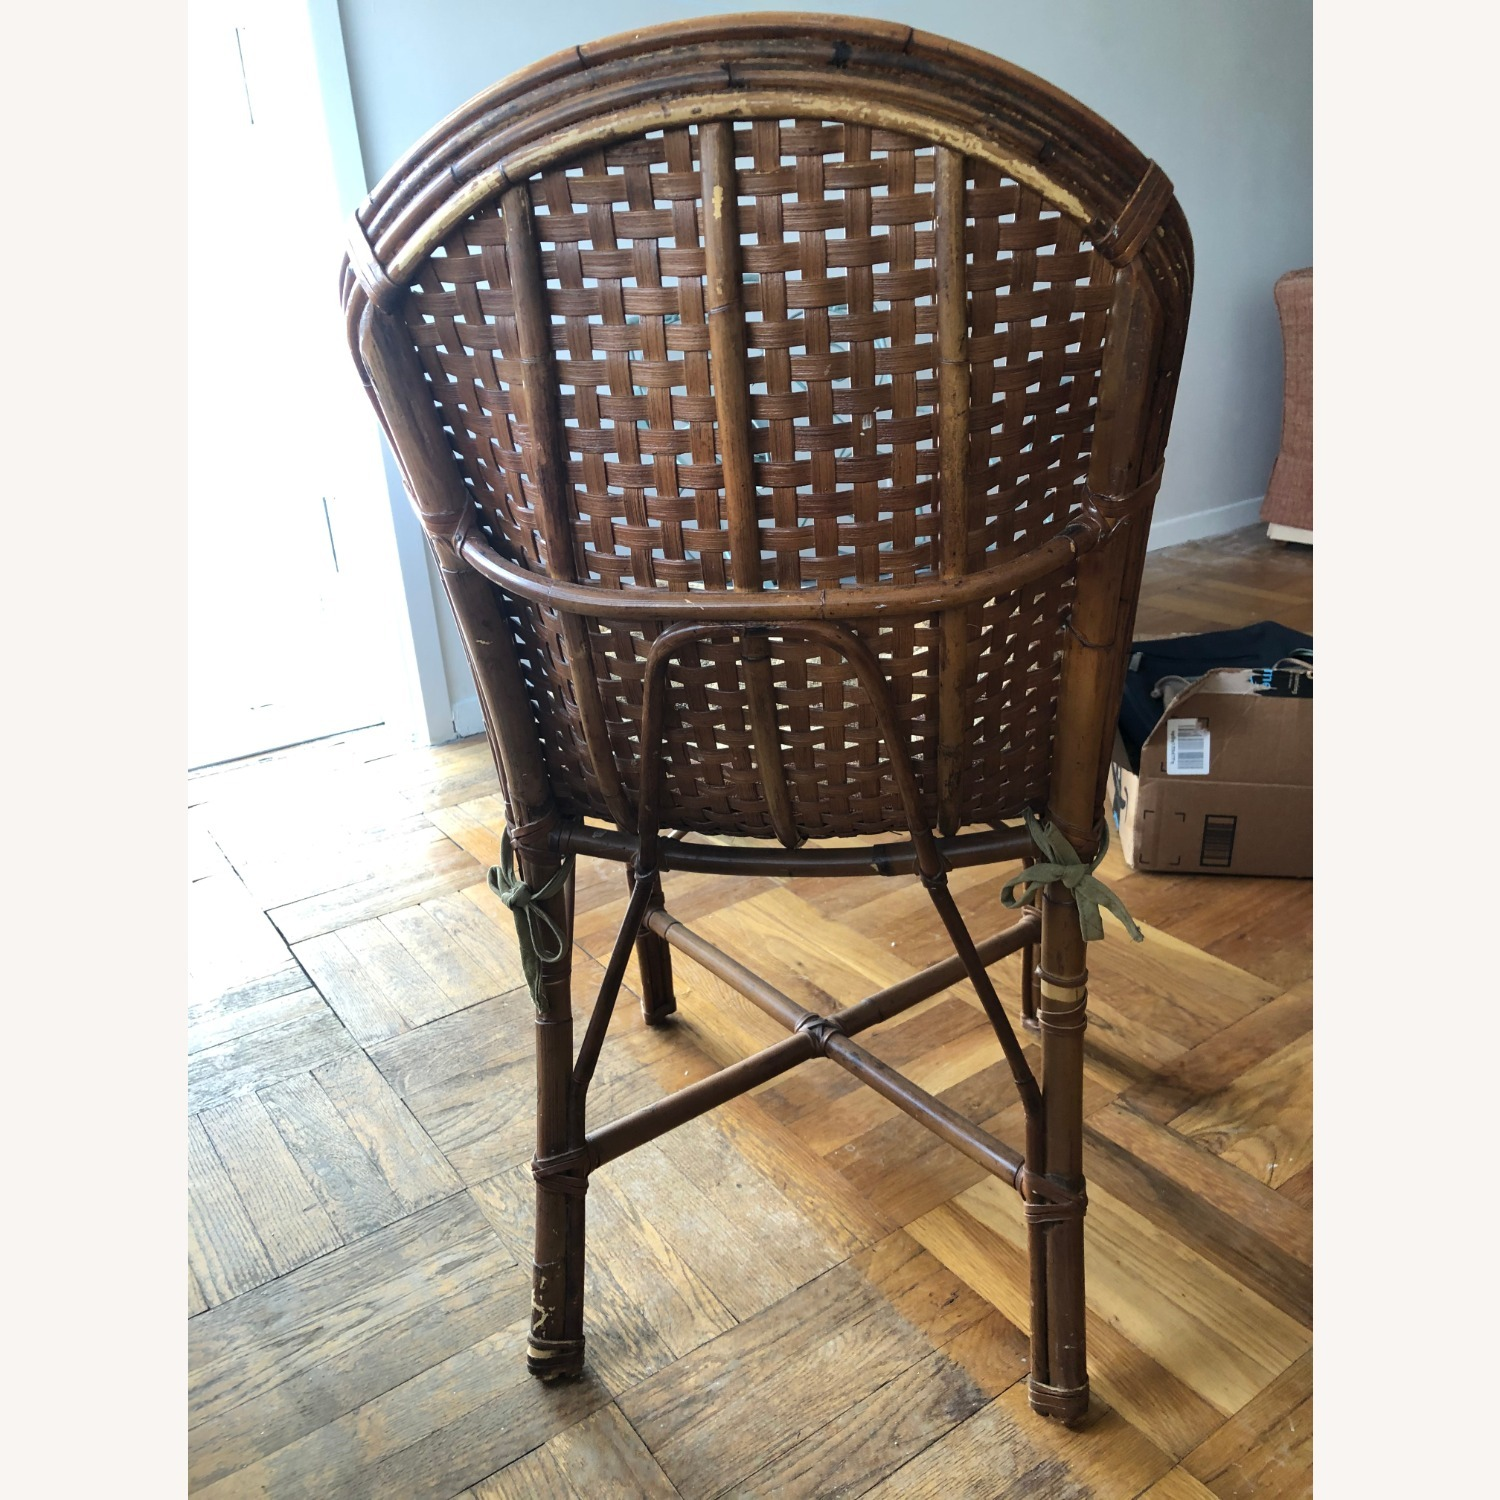 Wicker Dining Room Chairs (Set of 4) with coushins - image-4